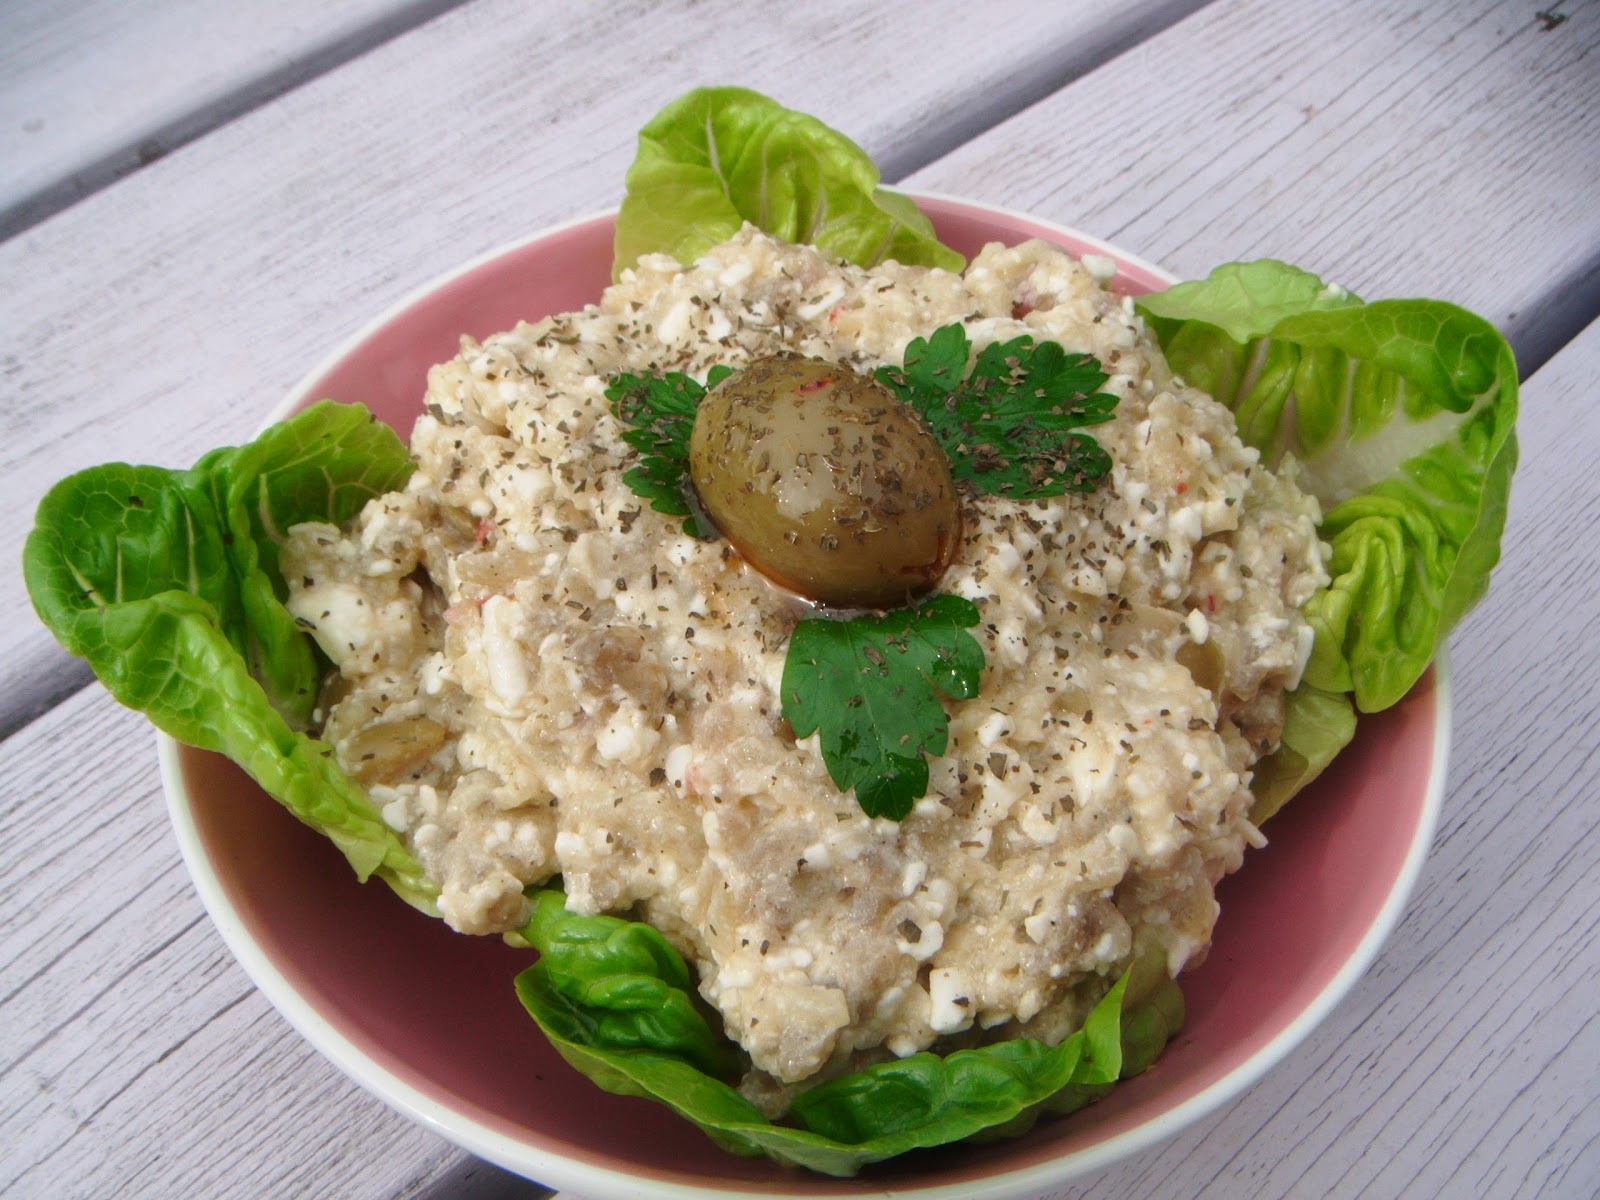 Discussion on this topic: Roasted Eggplant Dip with Herbs, roasted-eggplant-dip-with-herbs/